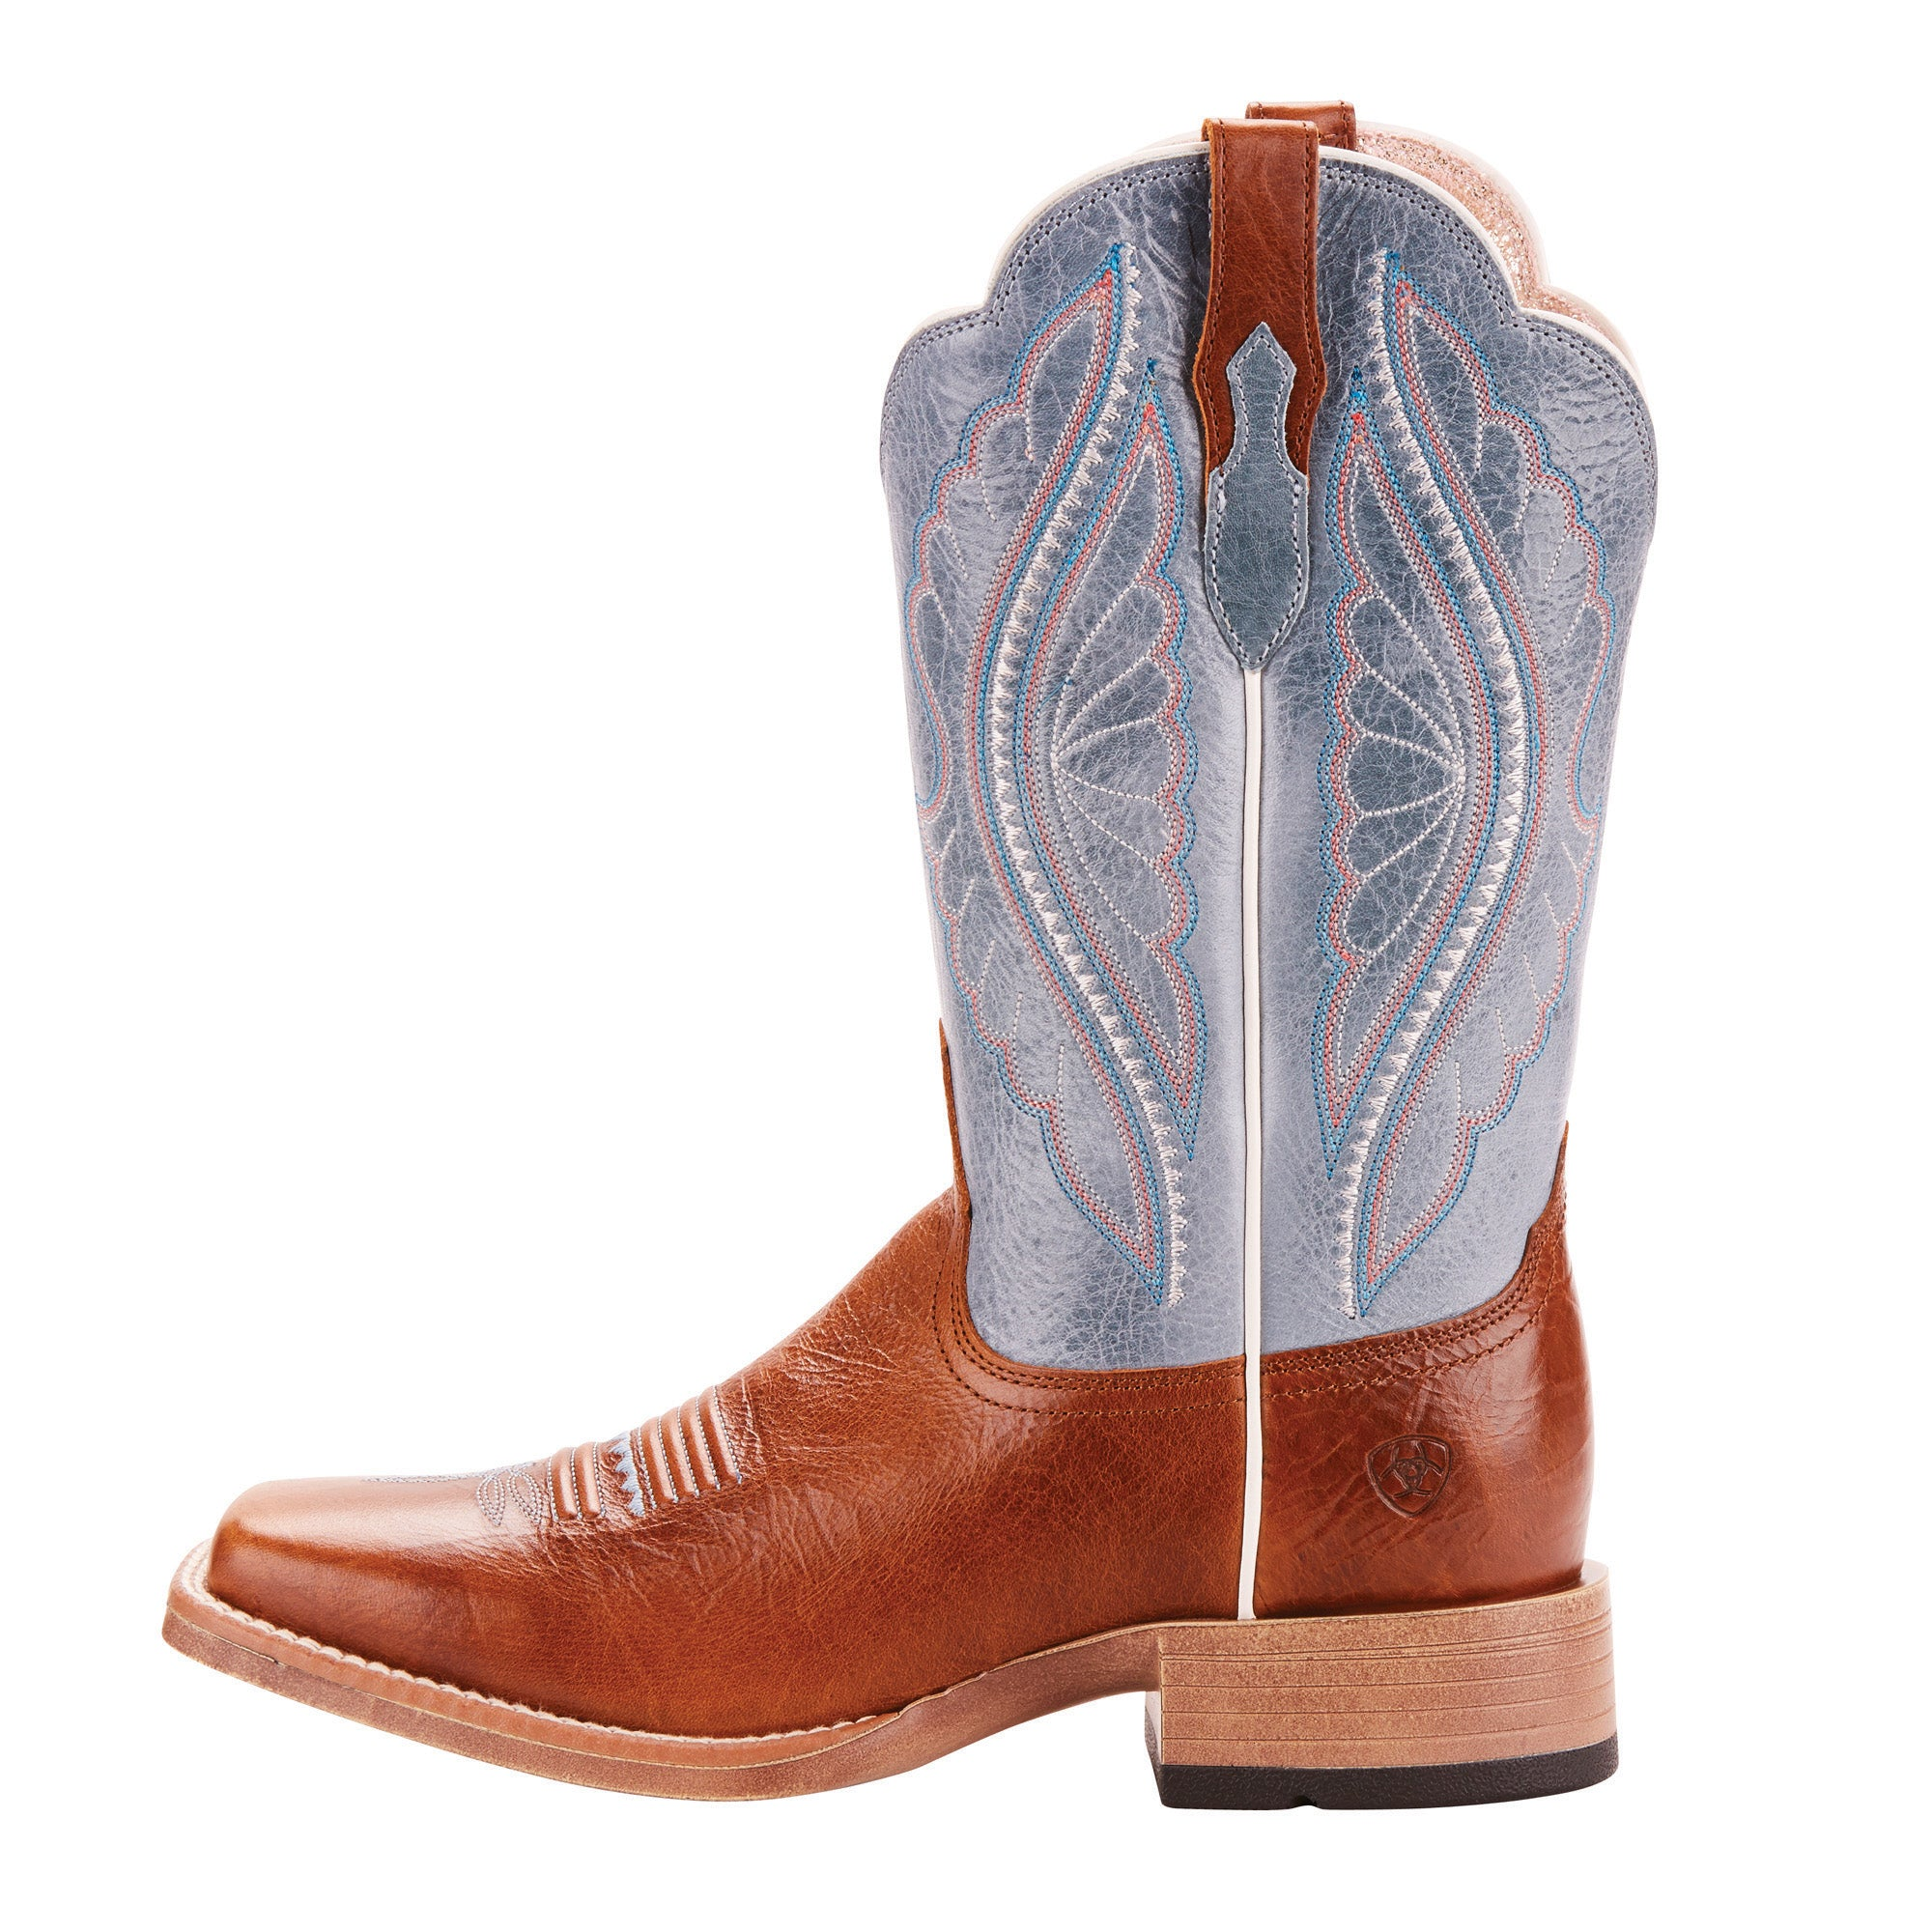 'Ariat' Women's 12